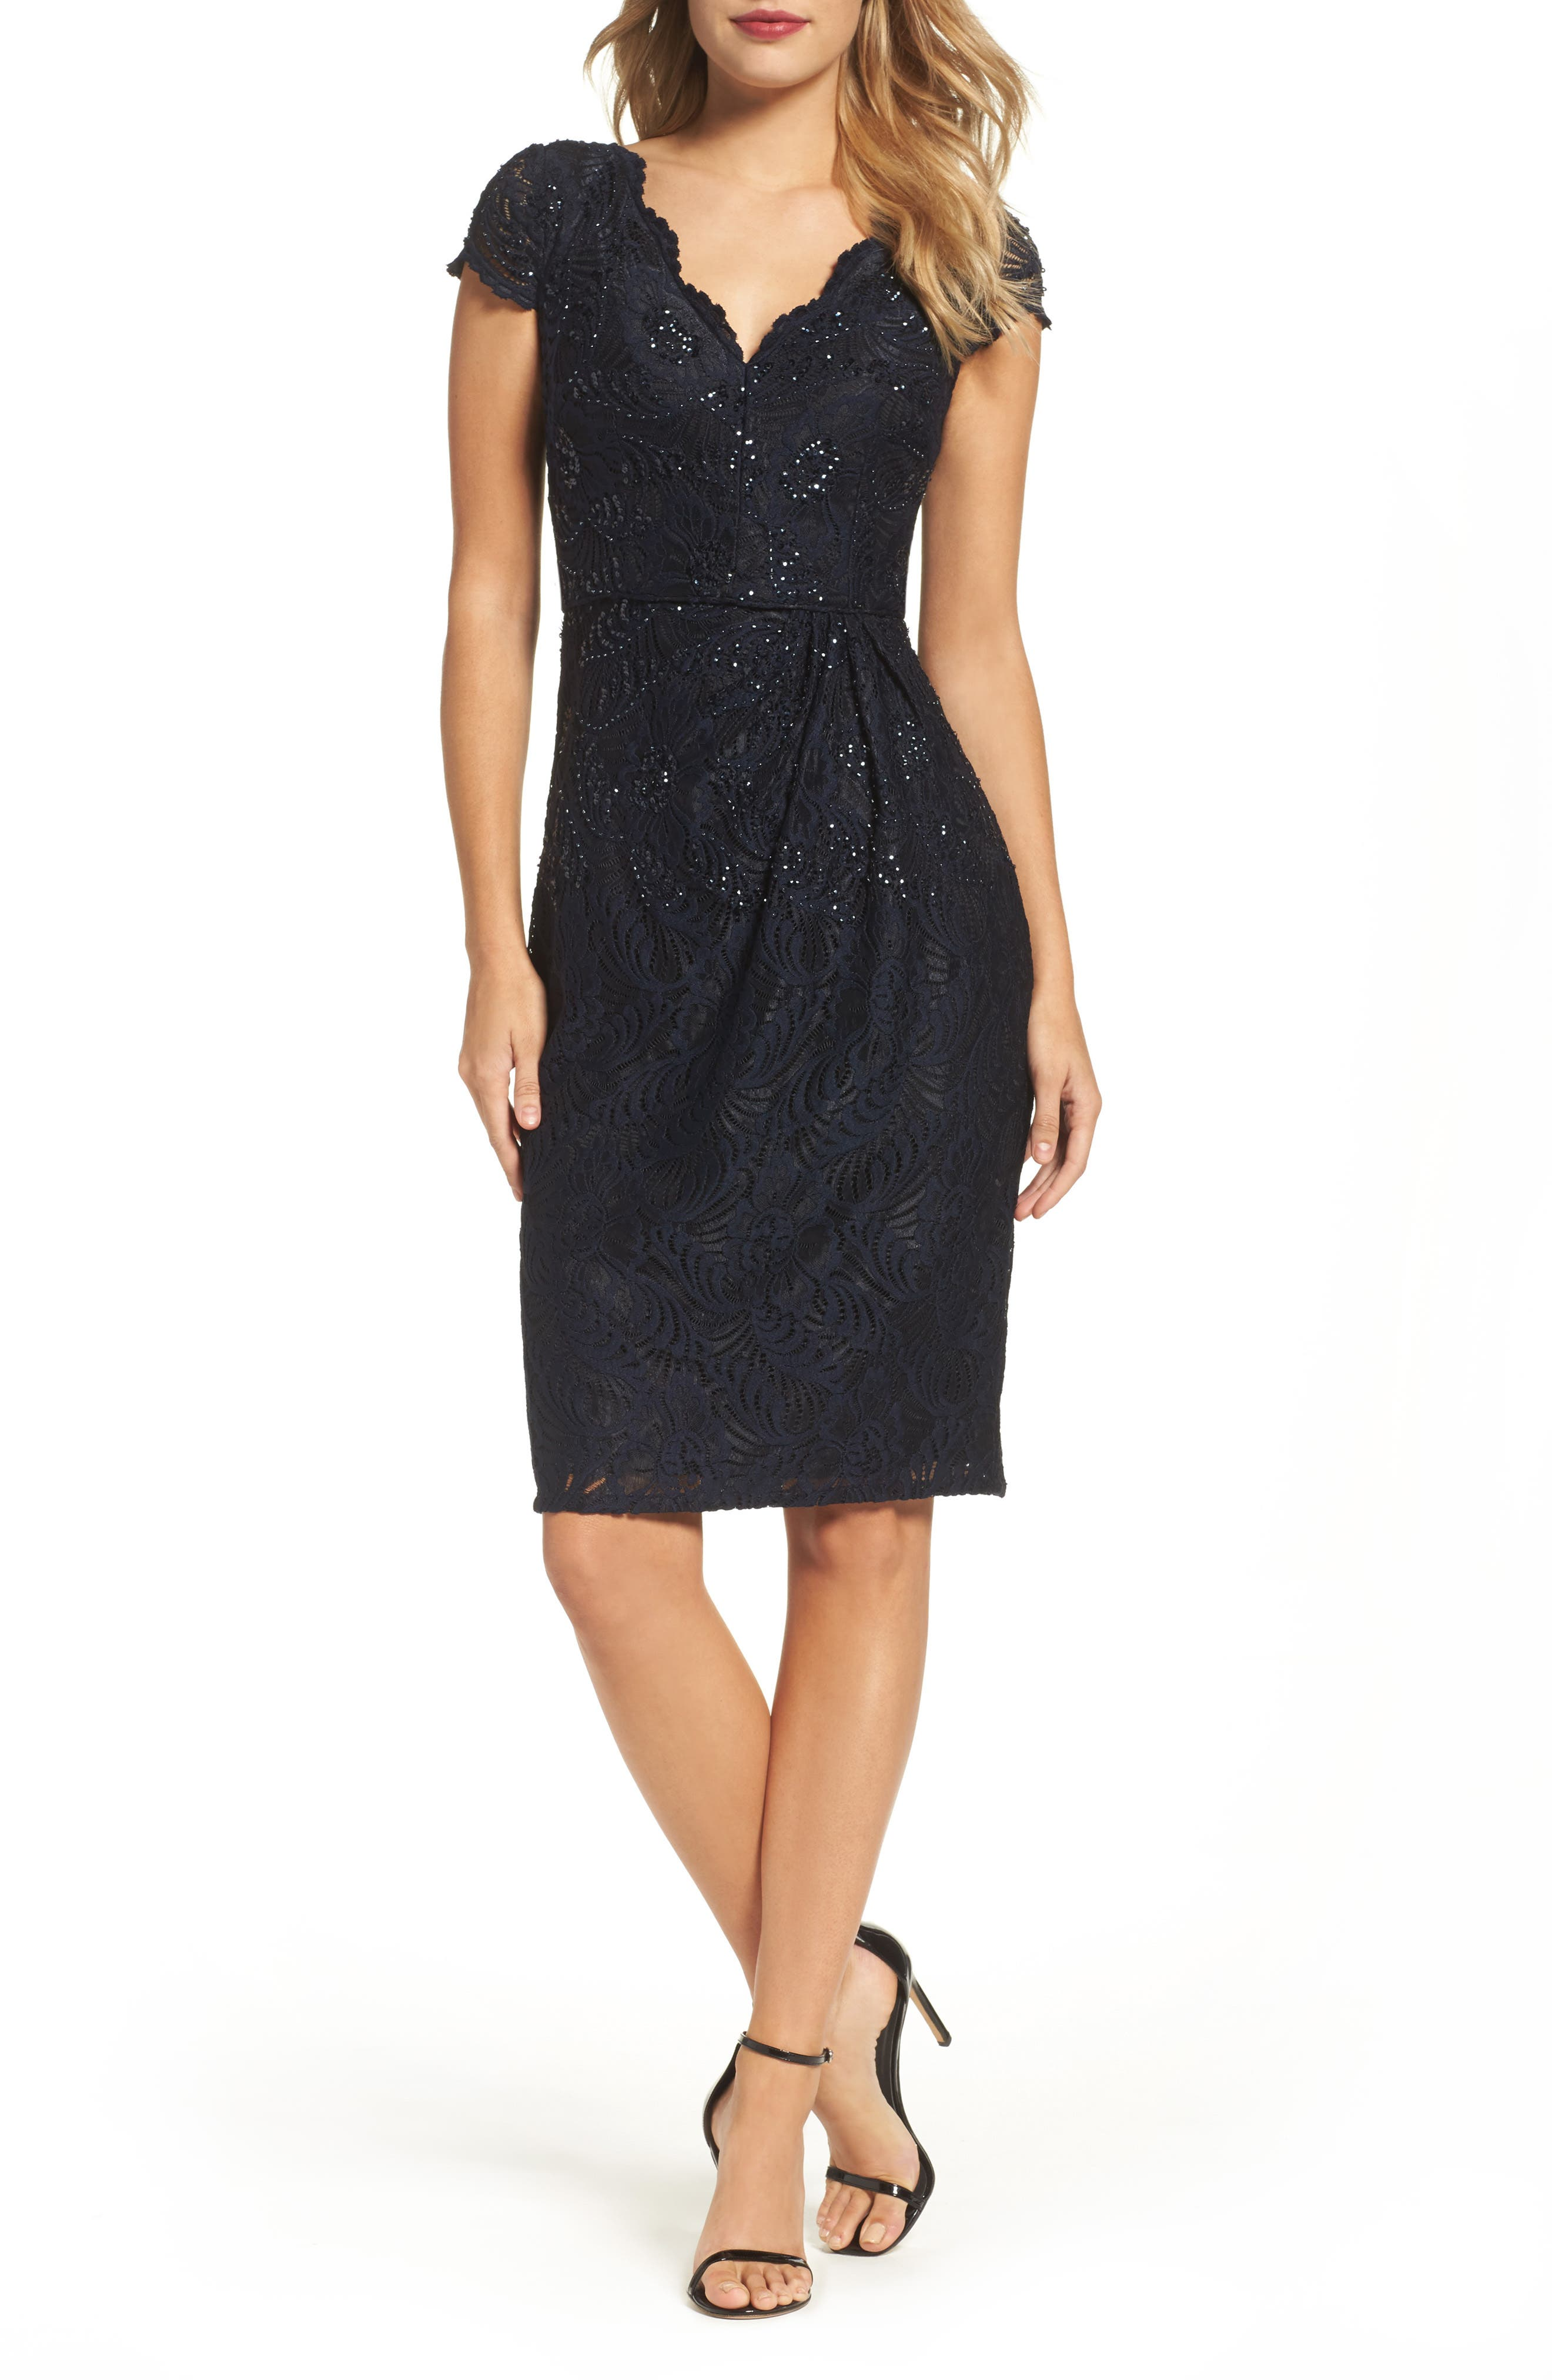 Effortless Style With Sheath Dresses. So named because it resembles a sheath in which you would carry a knife, sheath dresses offer long and lean look that's perfect your next special occasion.